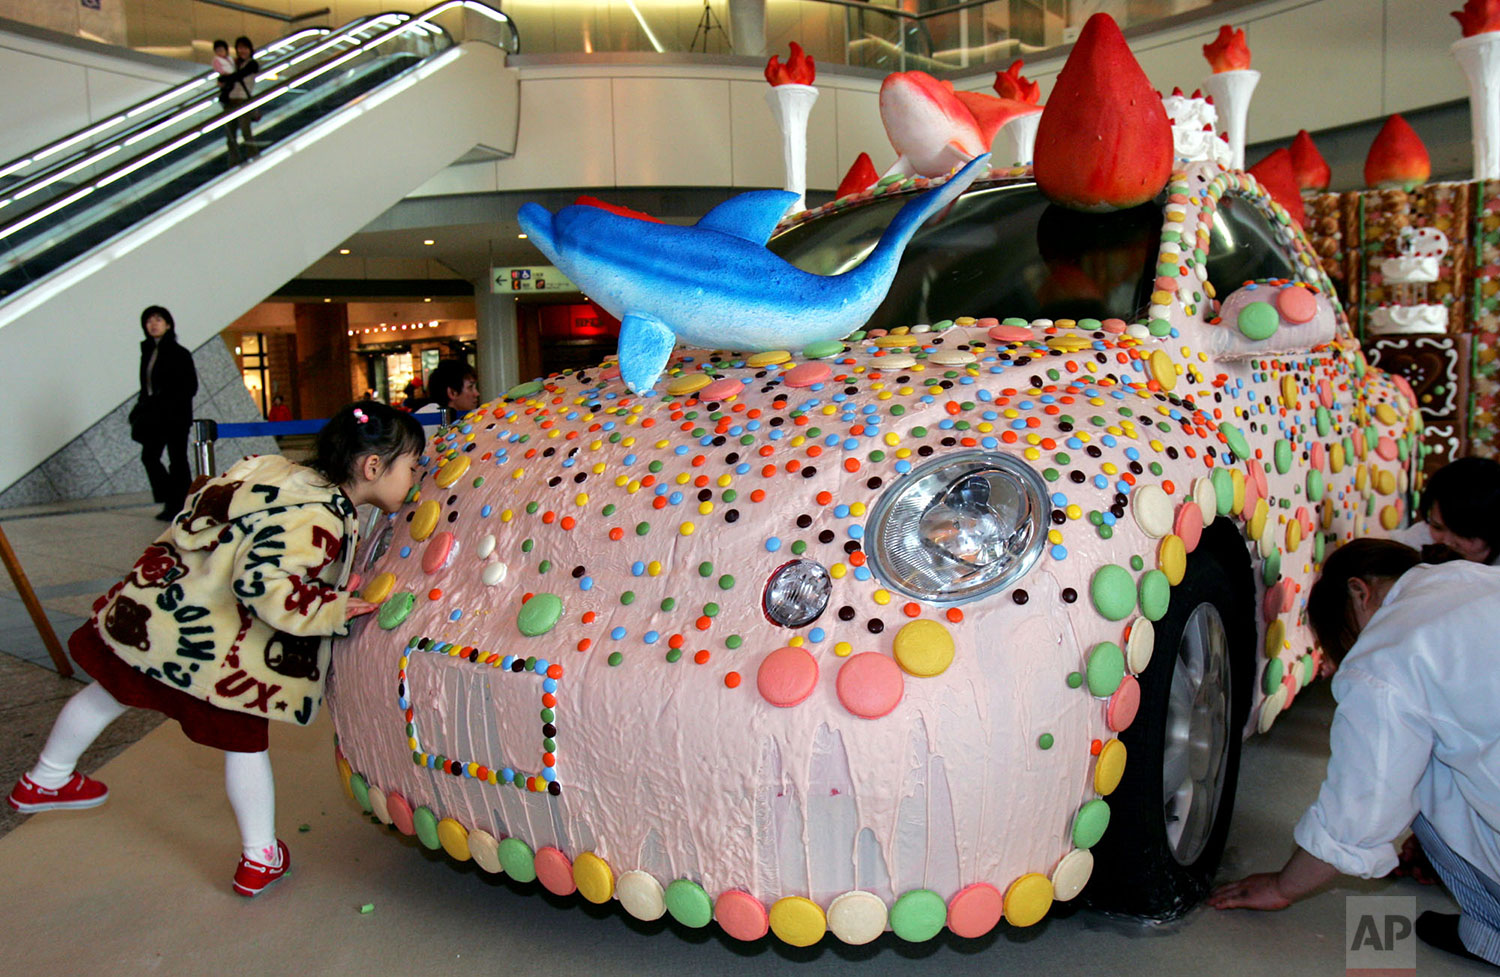 A young girl has a little taste of a cookie attached to a Volkswagen Beetle coated with white chocolate flavored with the use of strawberry as it was created by popular chefs and on display at Harumi Triton shopping complex in Tokyo, Jan. 29, 2005 ahead of Valentine's Day.  (AP Photo/Koji Sasahara)